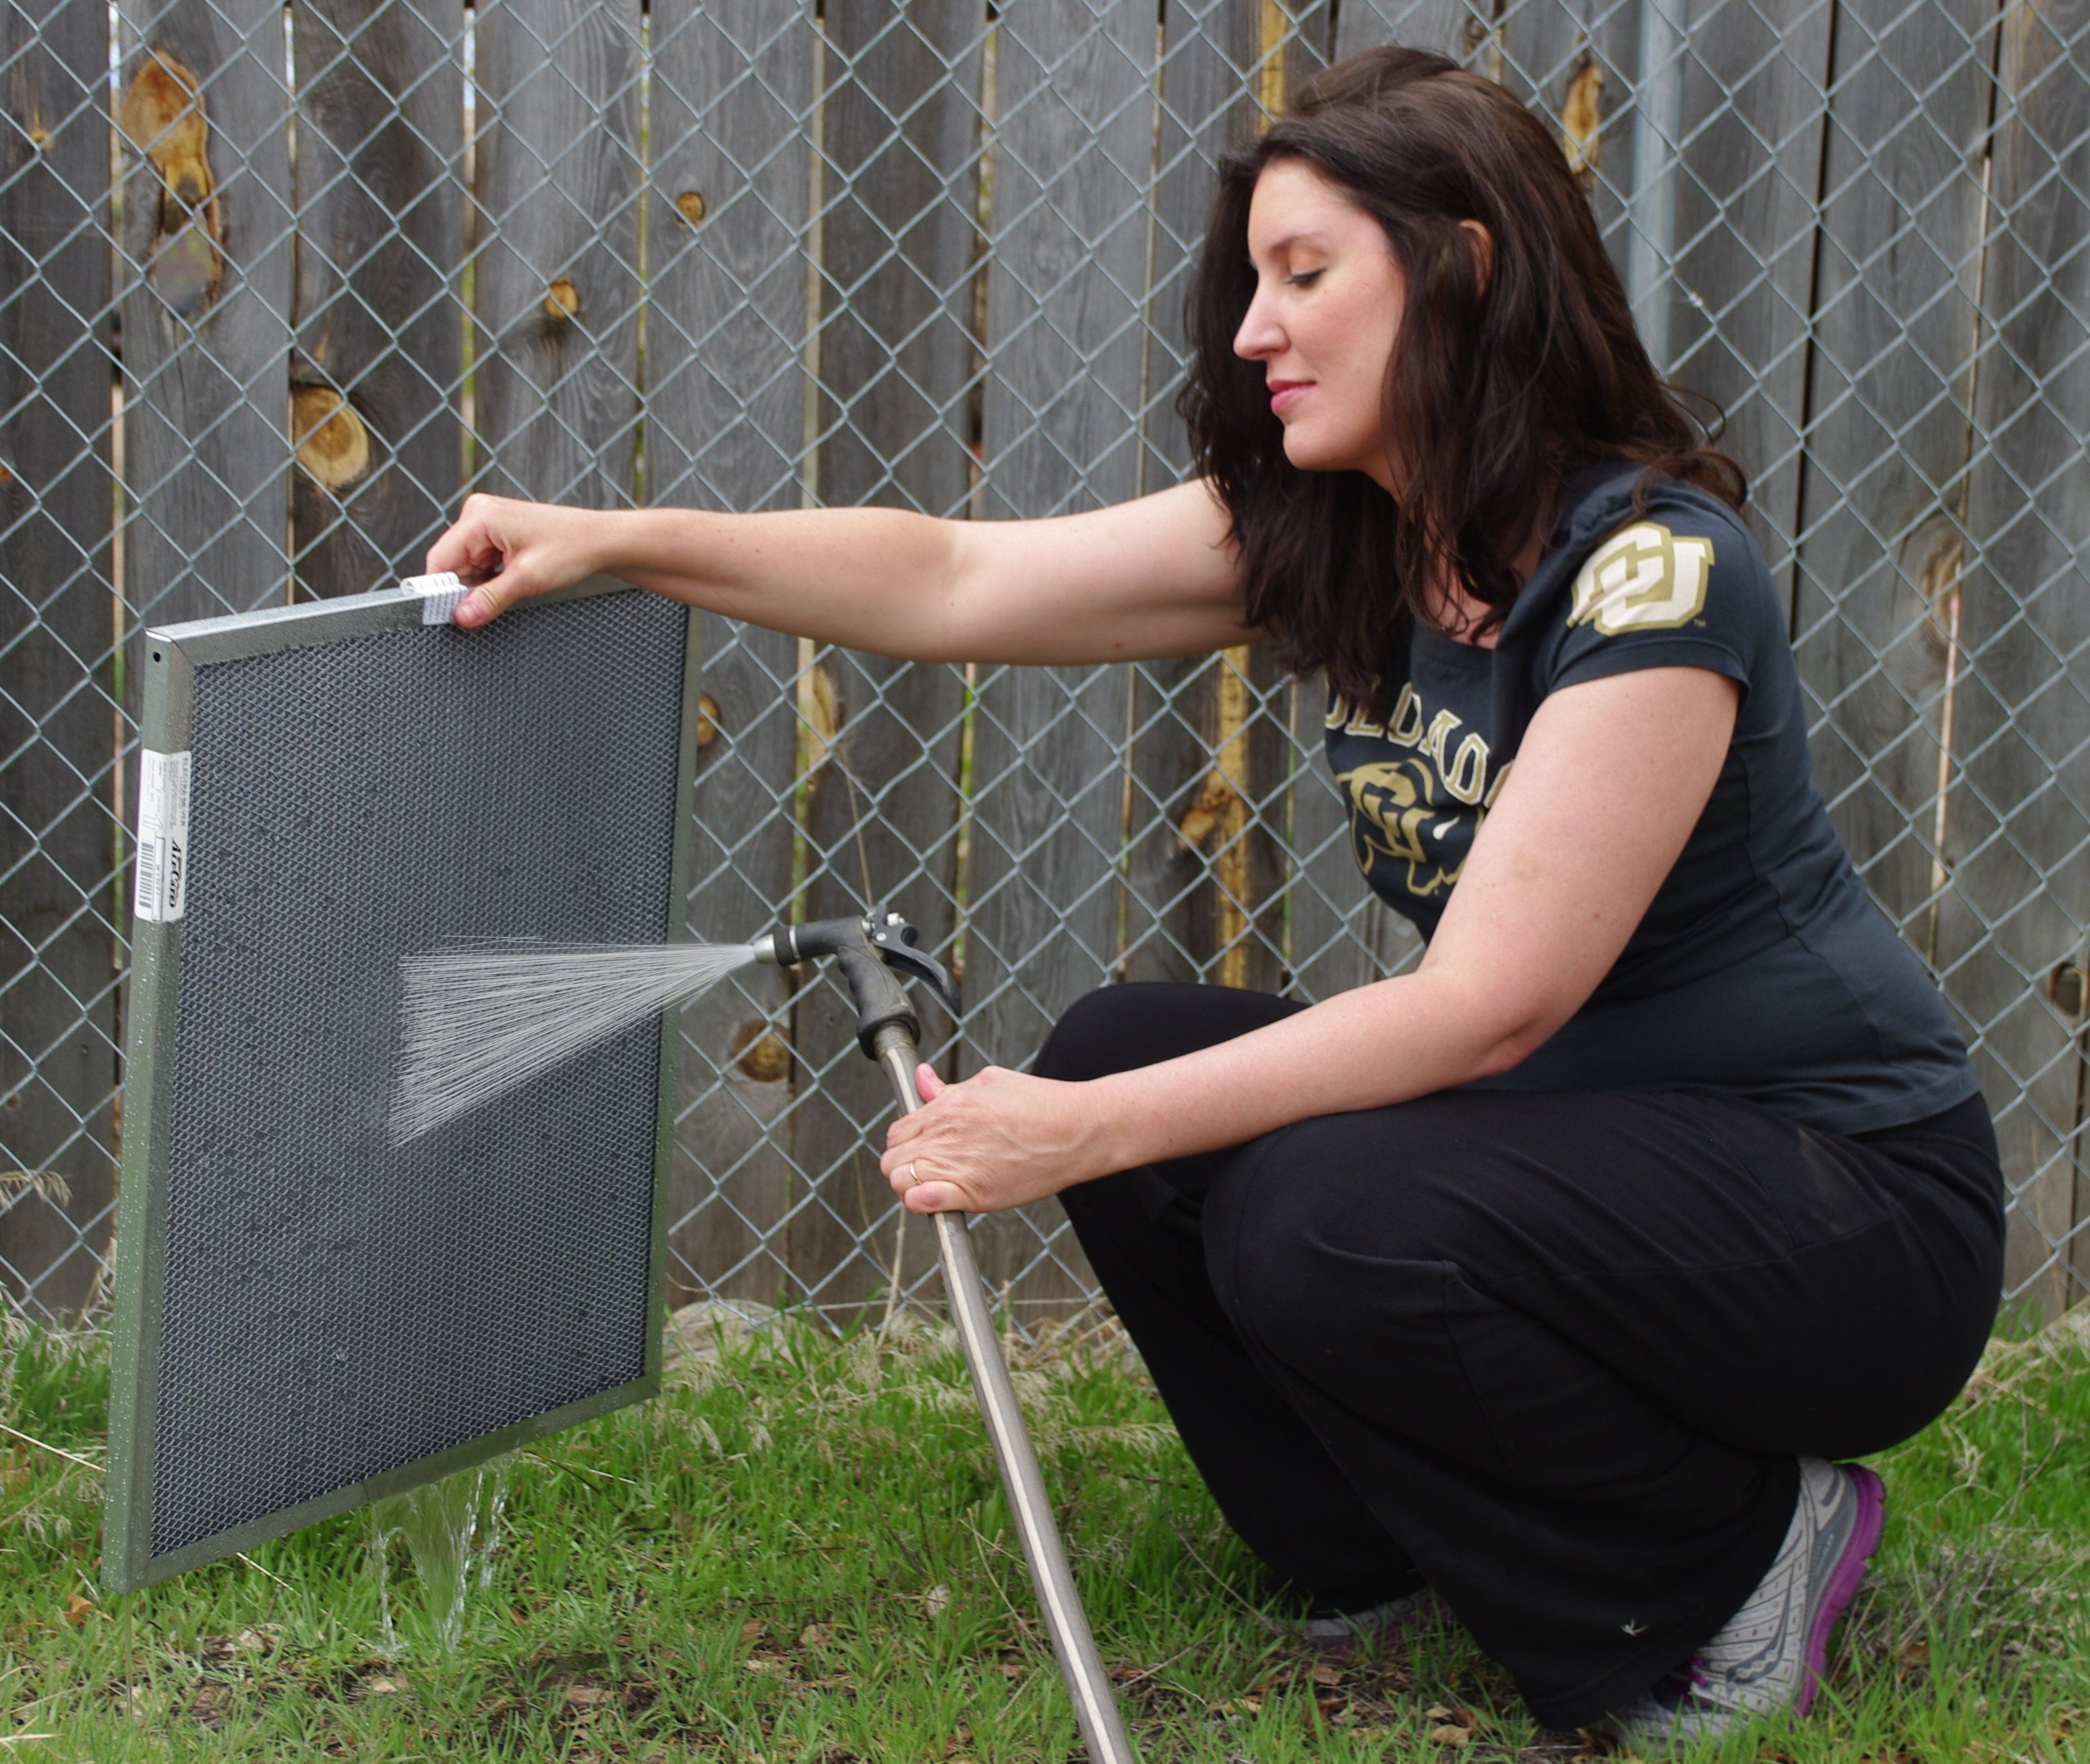 How to Clean an Electrostatic Filter For the Home